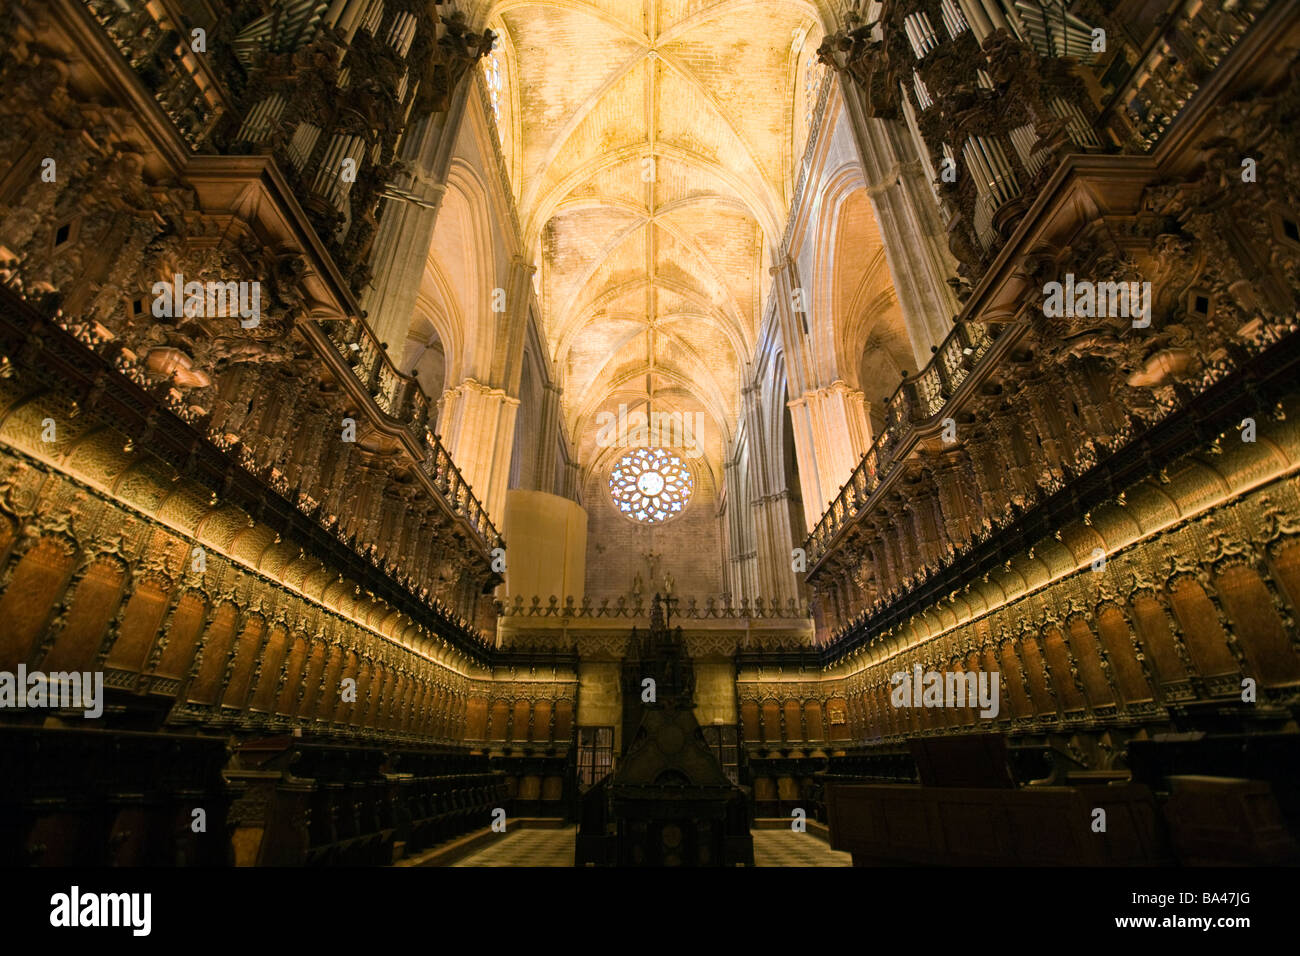 Cathedral choir town of Seville autonomous community of Andalusia southern Spain - Stock Image